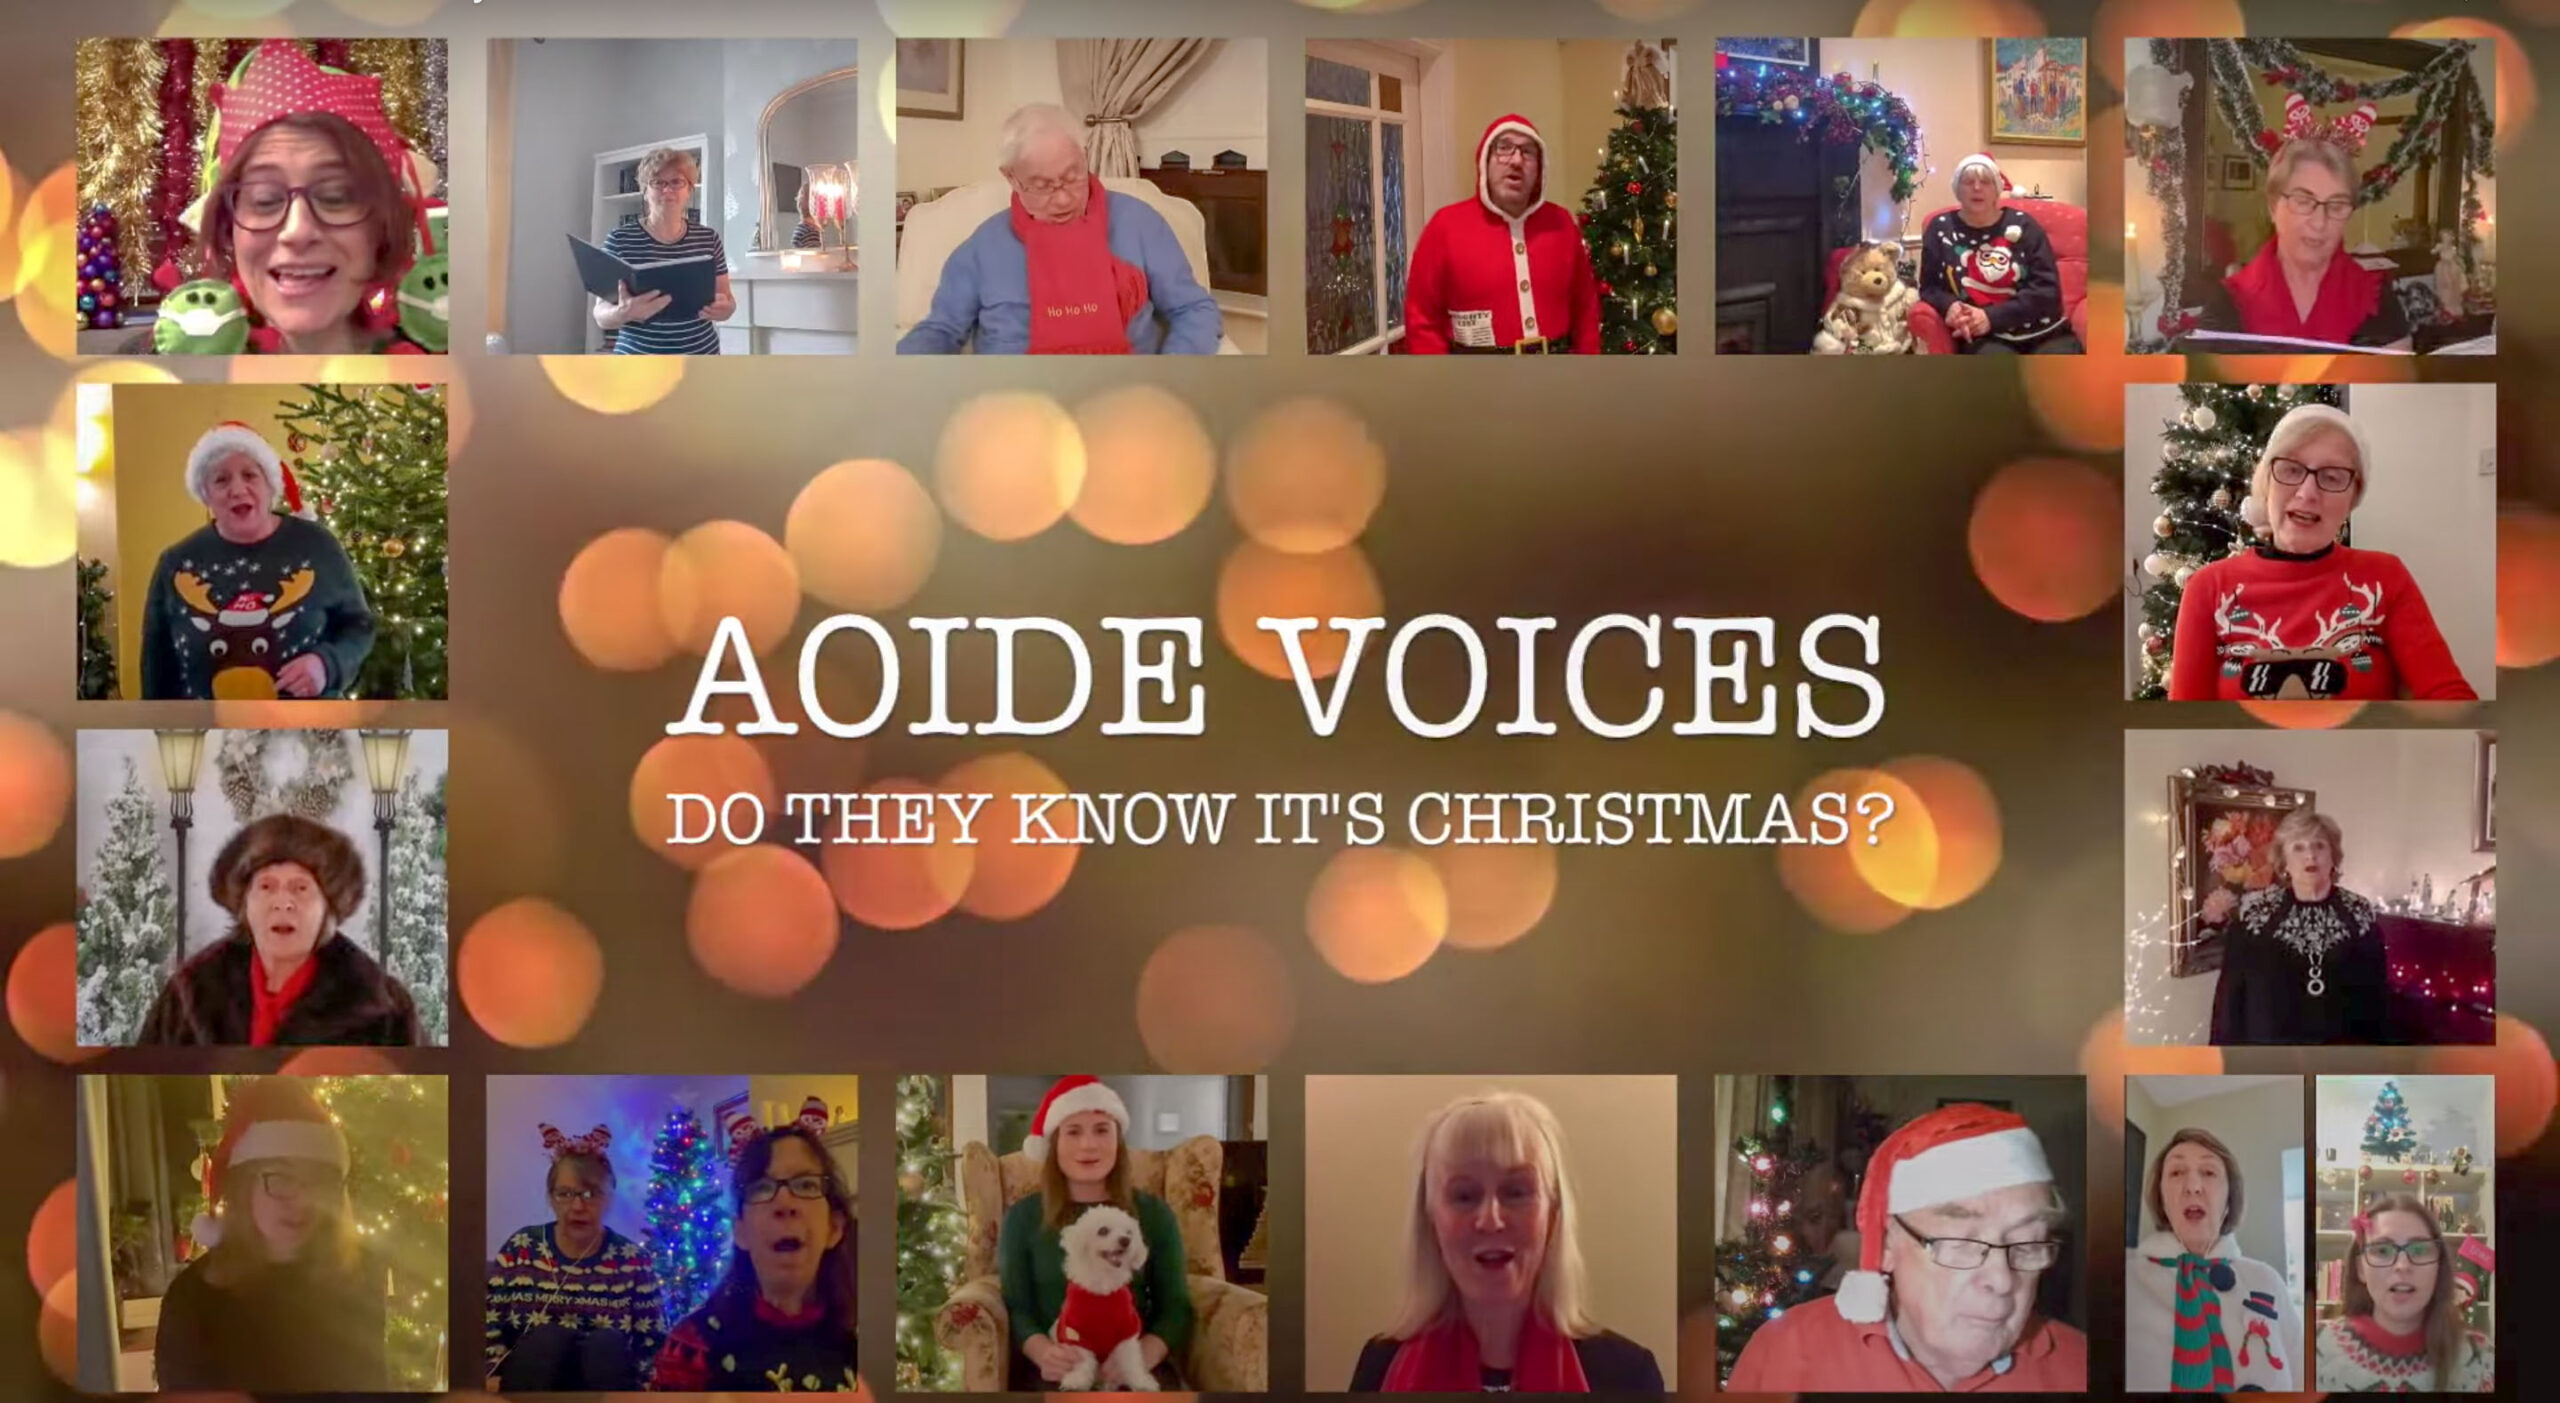 Aoide Voices Choir